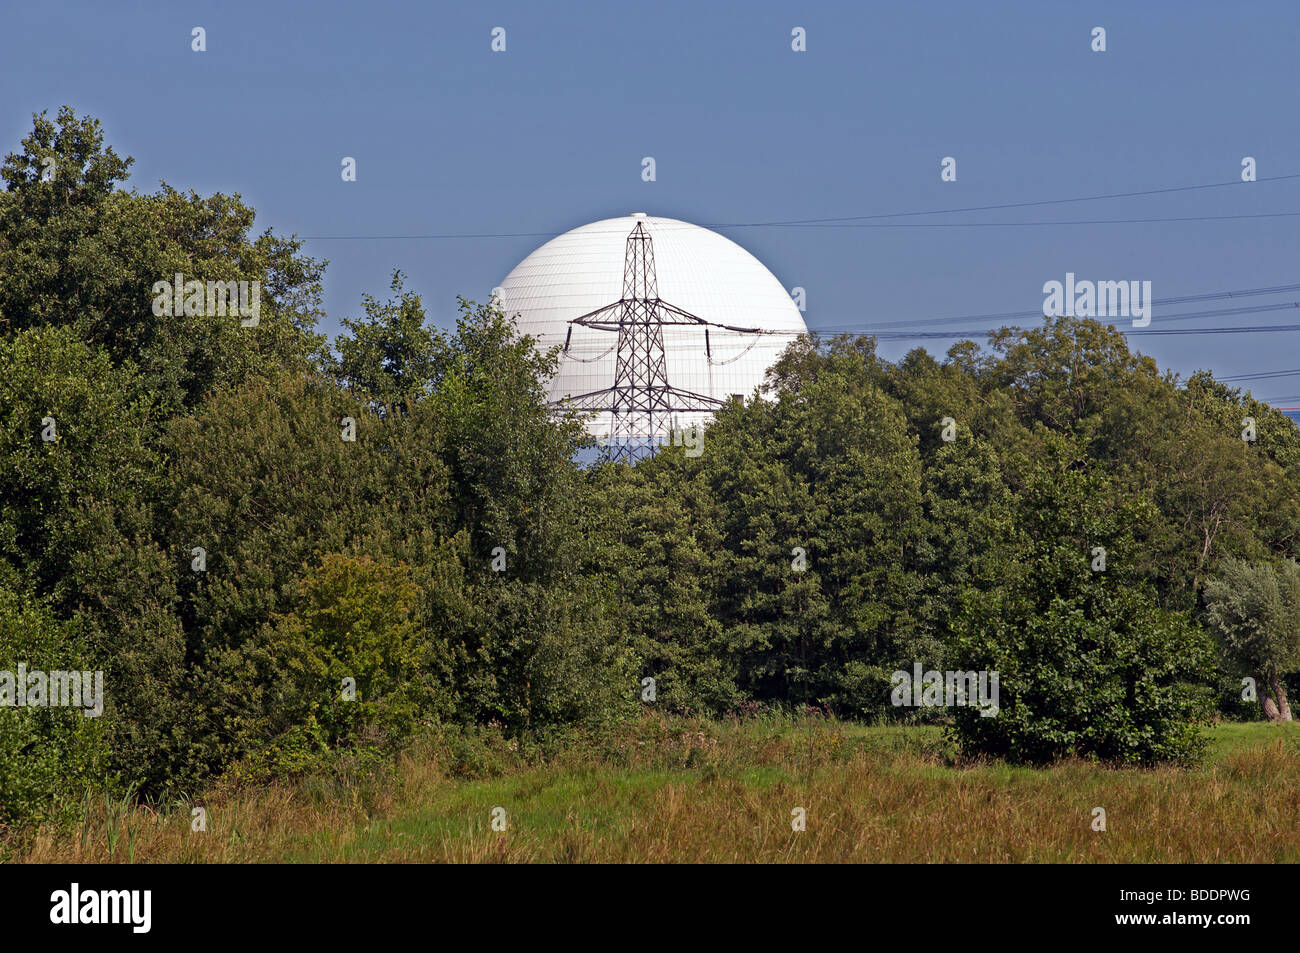 Sizewell B nuclear power station, UK. - Stock Image